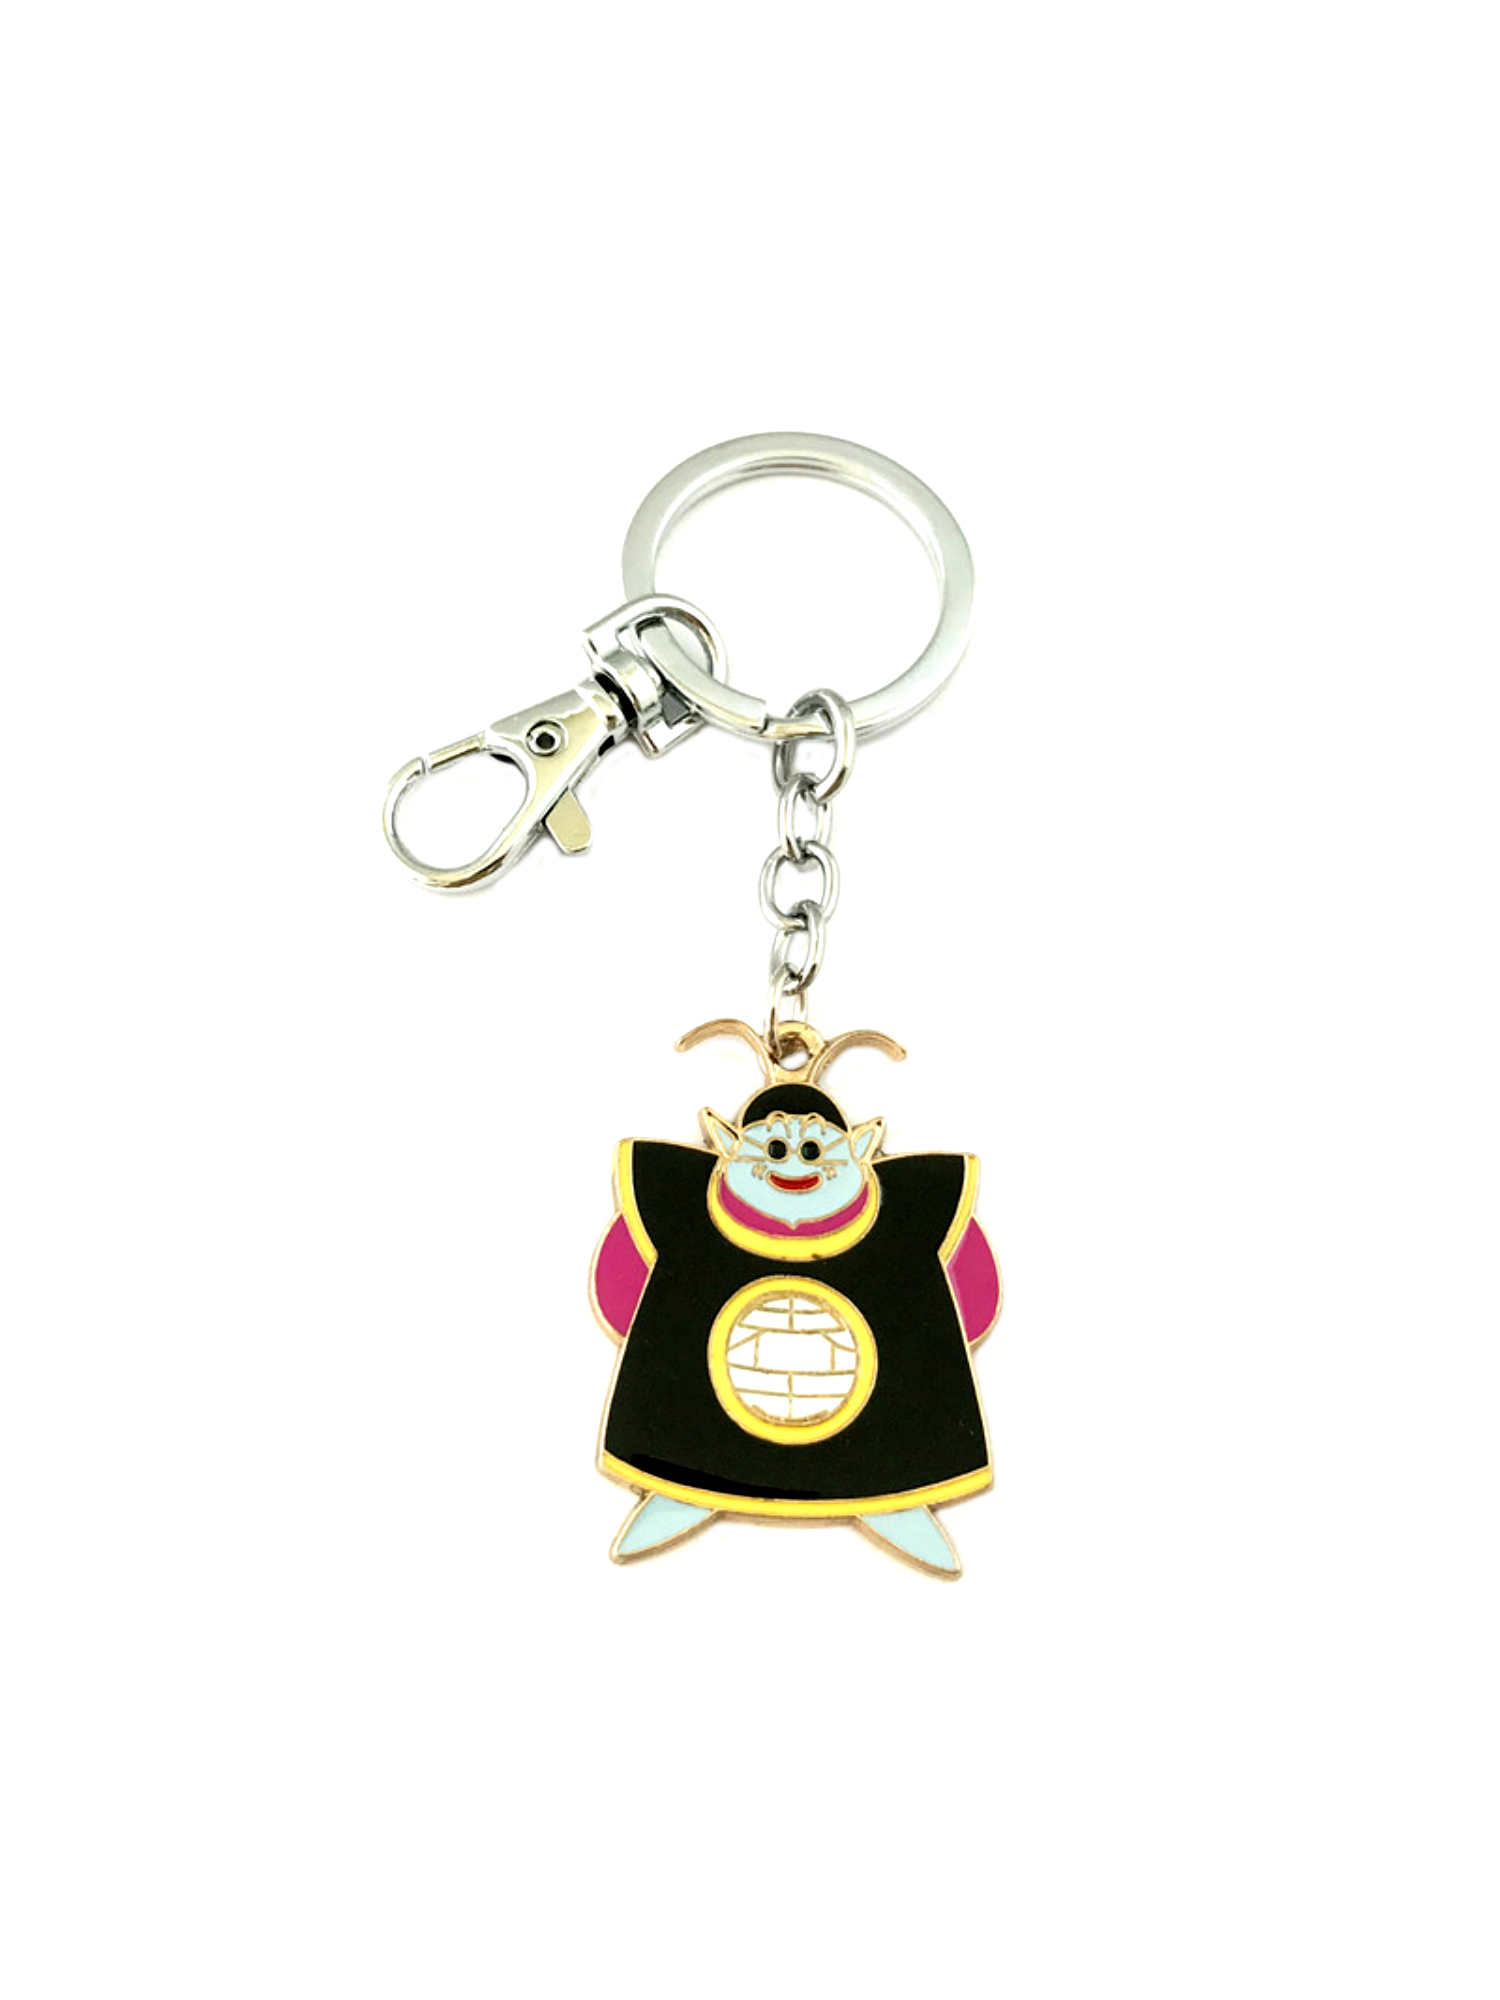 Dragon ball z keychain gold statistics on steroids in sports